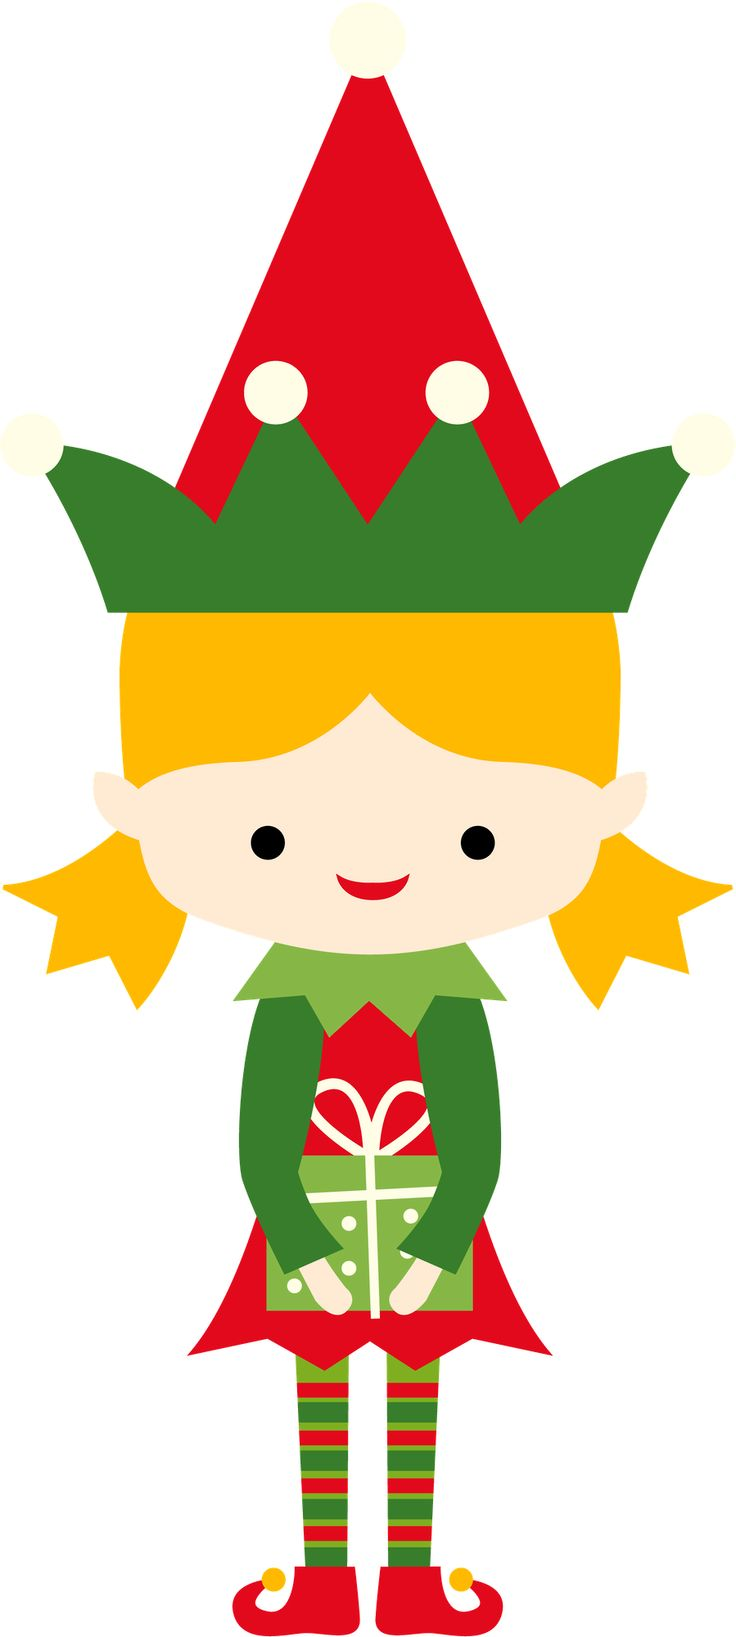 736x1637 Baby Elf Elf Clip Art Merry Christmas Amp Happy New Year Arts